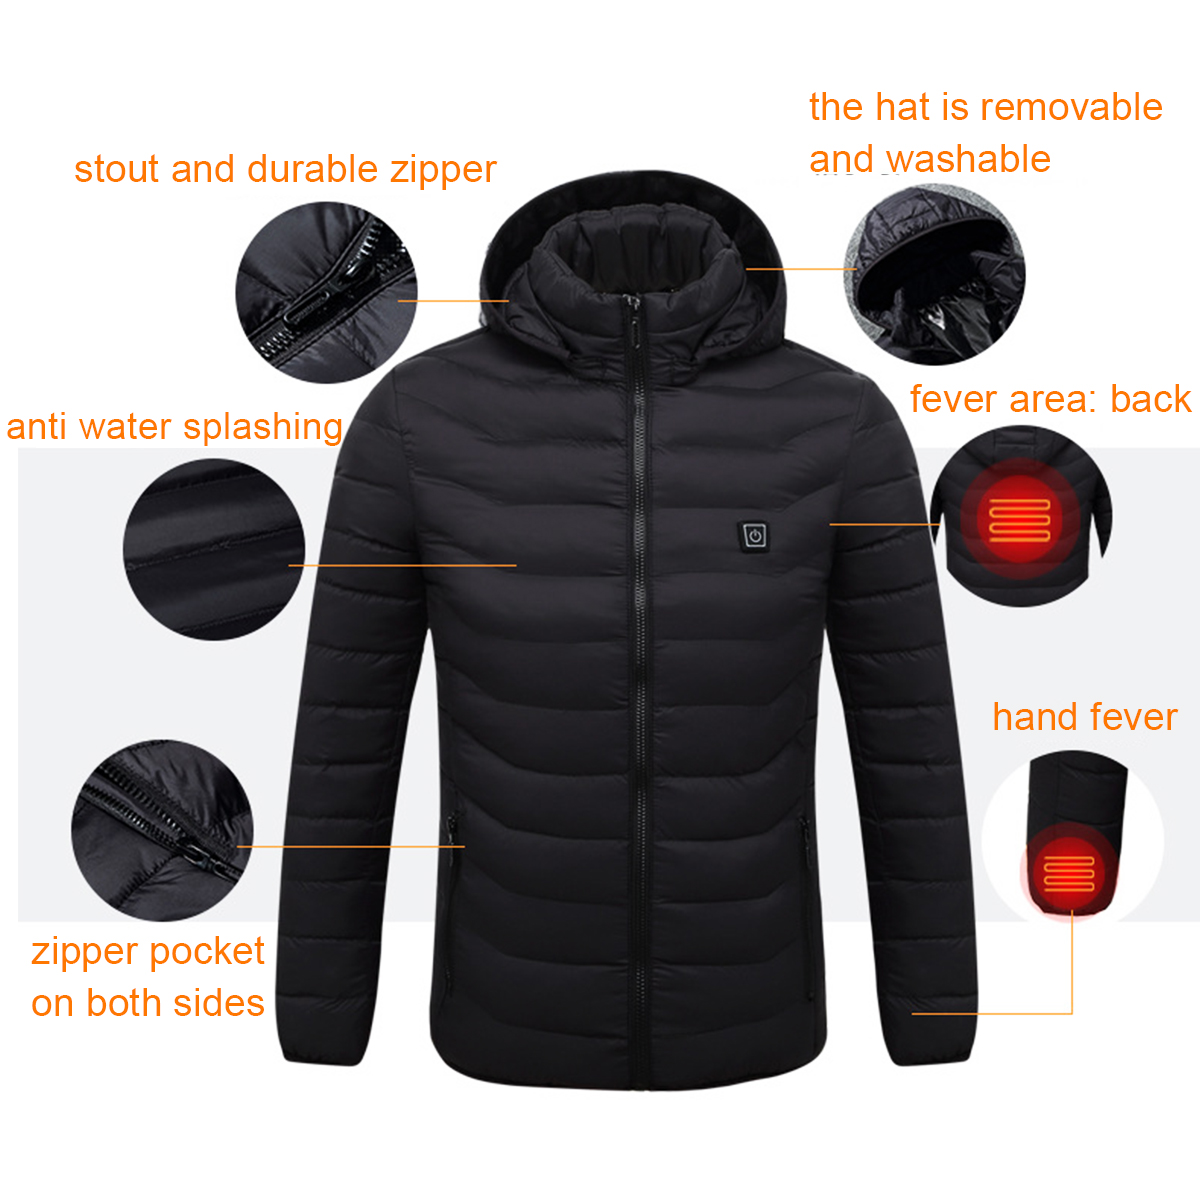 Men's Intelligent Heating USB Hooded Heated Work Jacket Coats Adjustable Temp